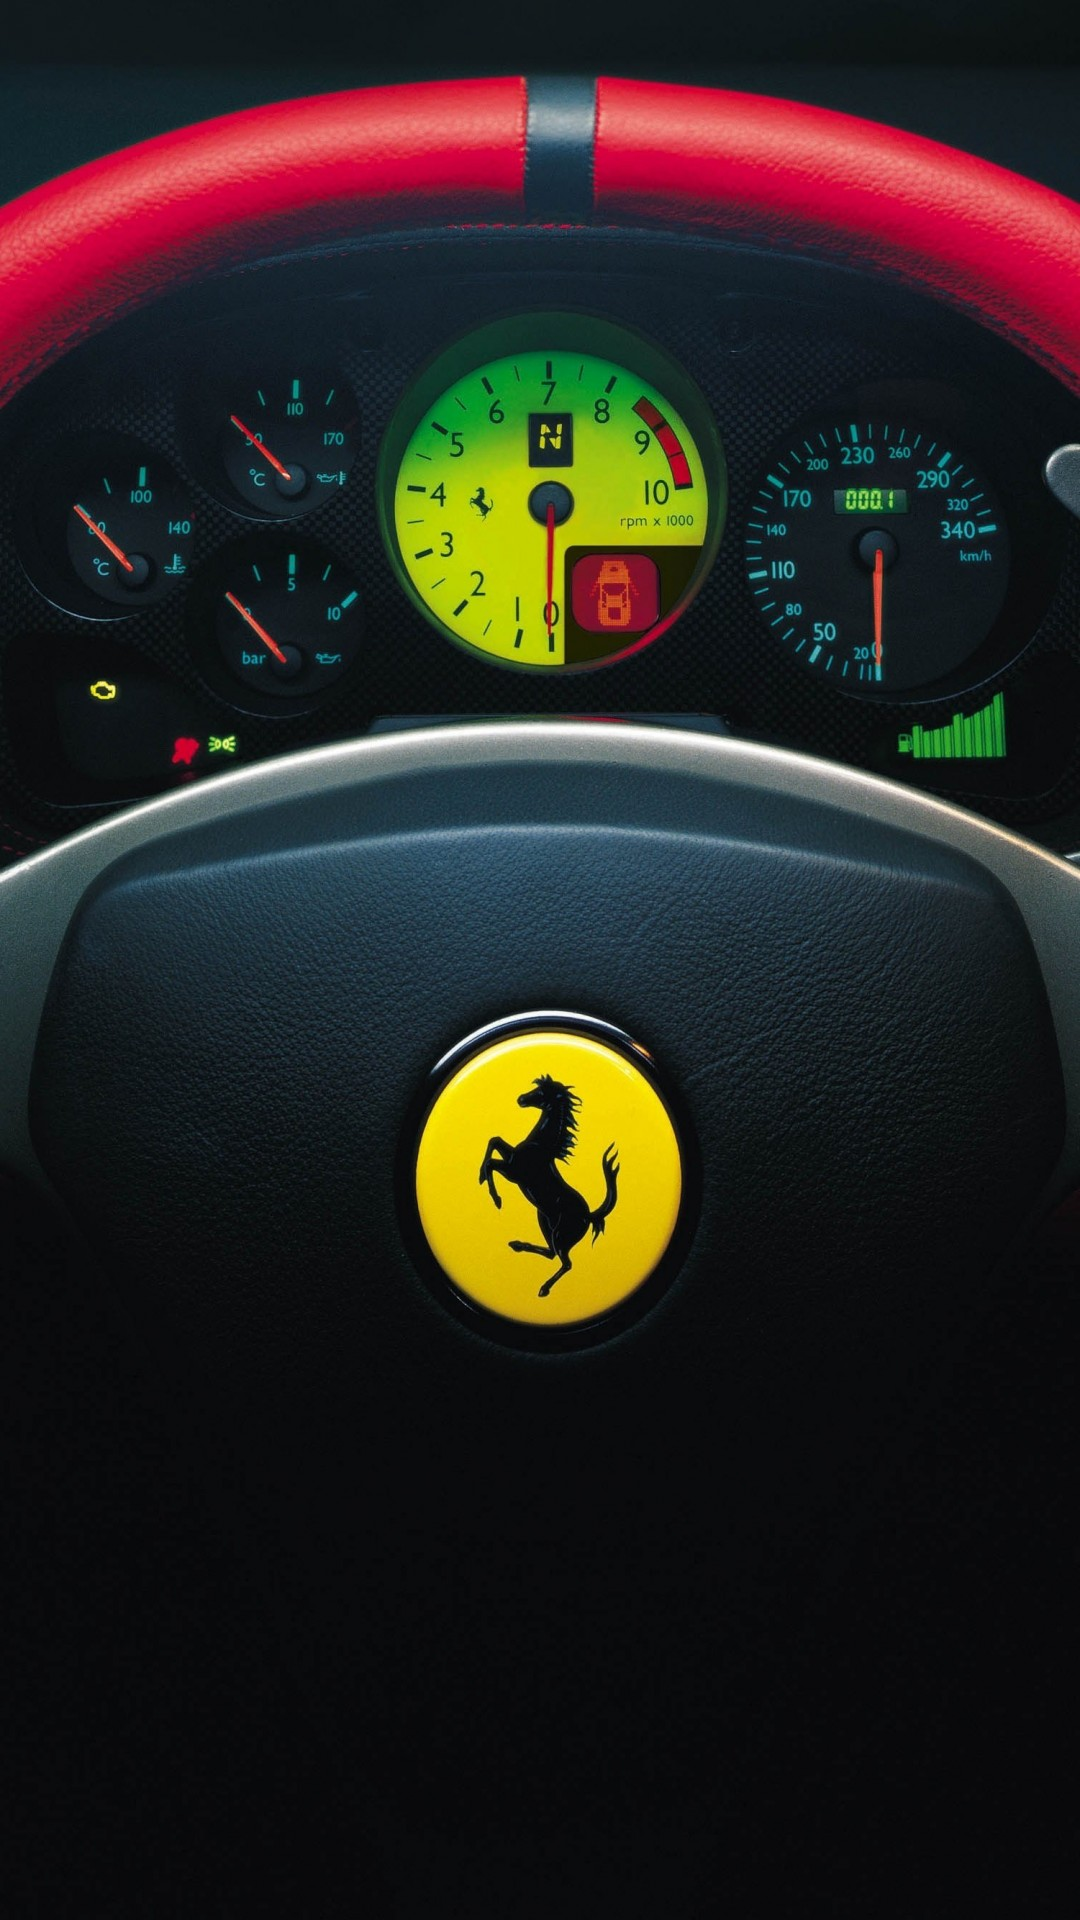 Ferrari Steering Wheel Wallpaper for HTC One